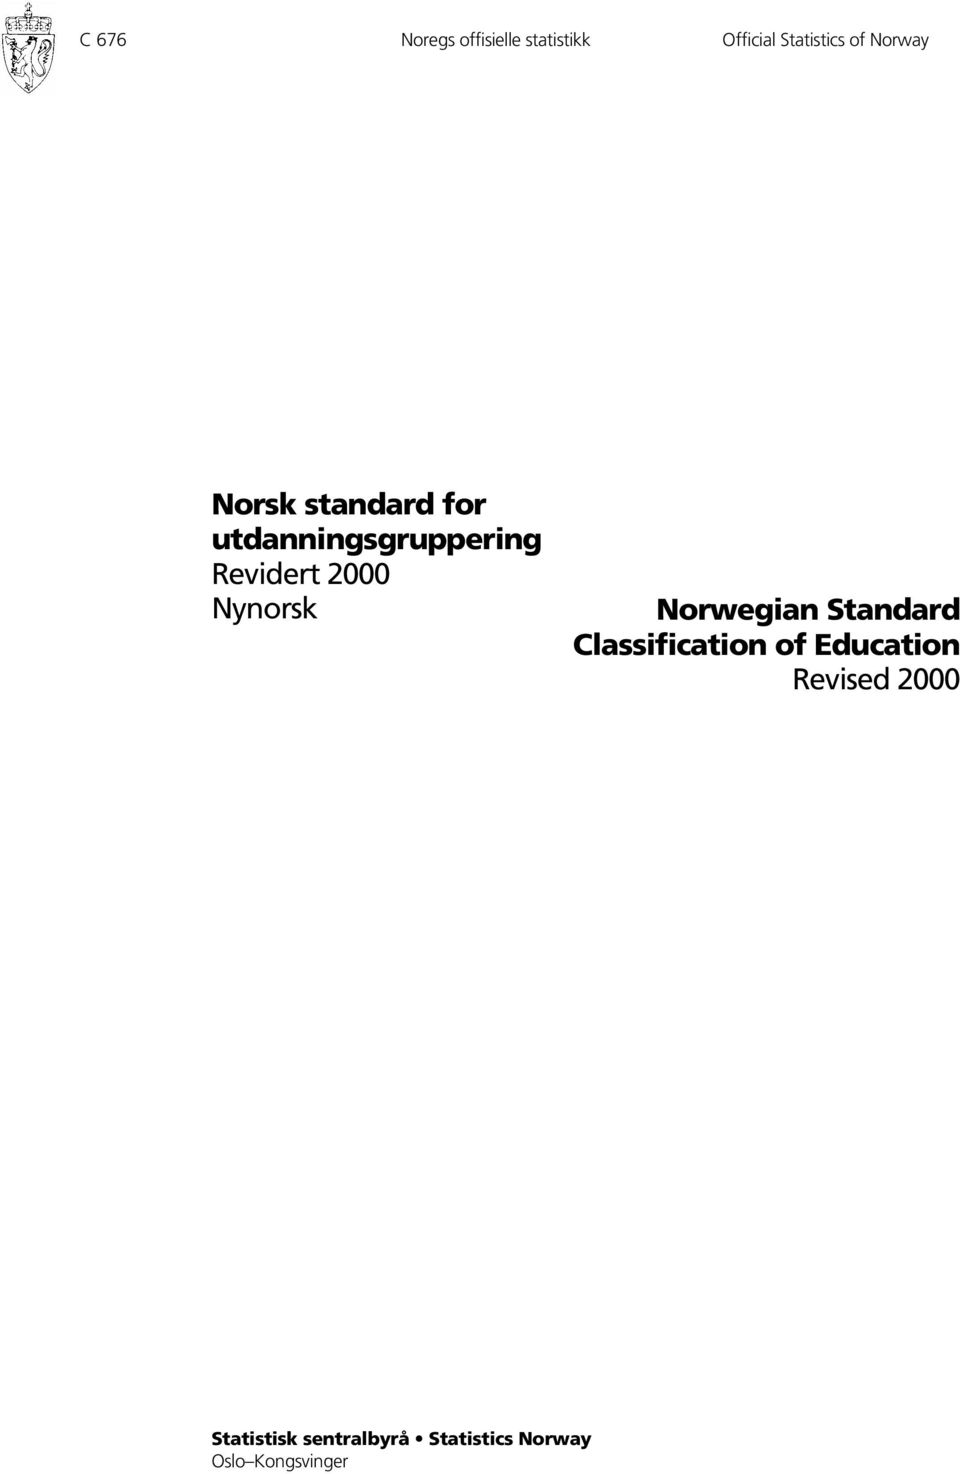 Nynorsk Norwegian Standard Classification of Education